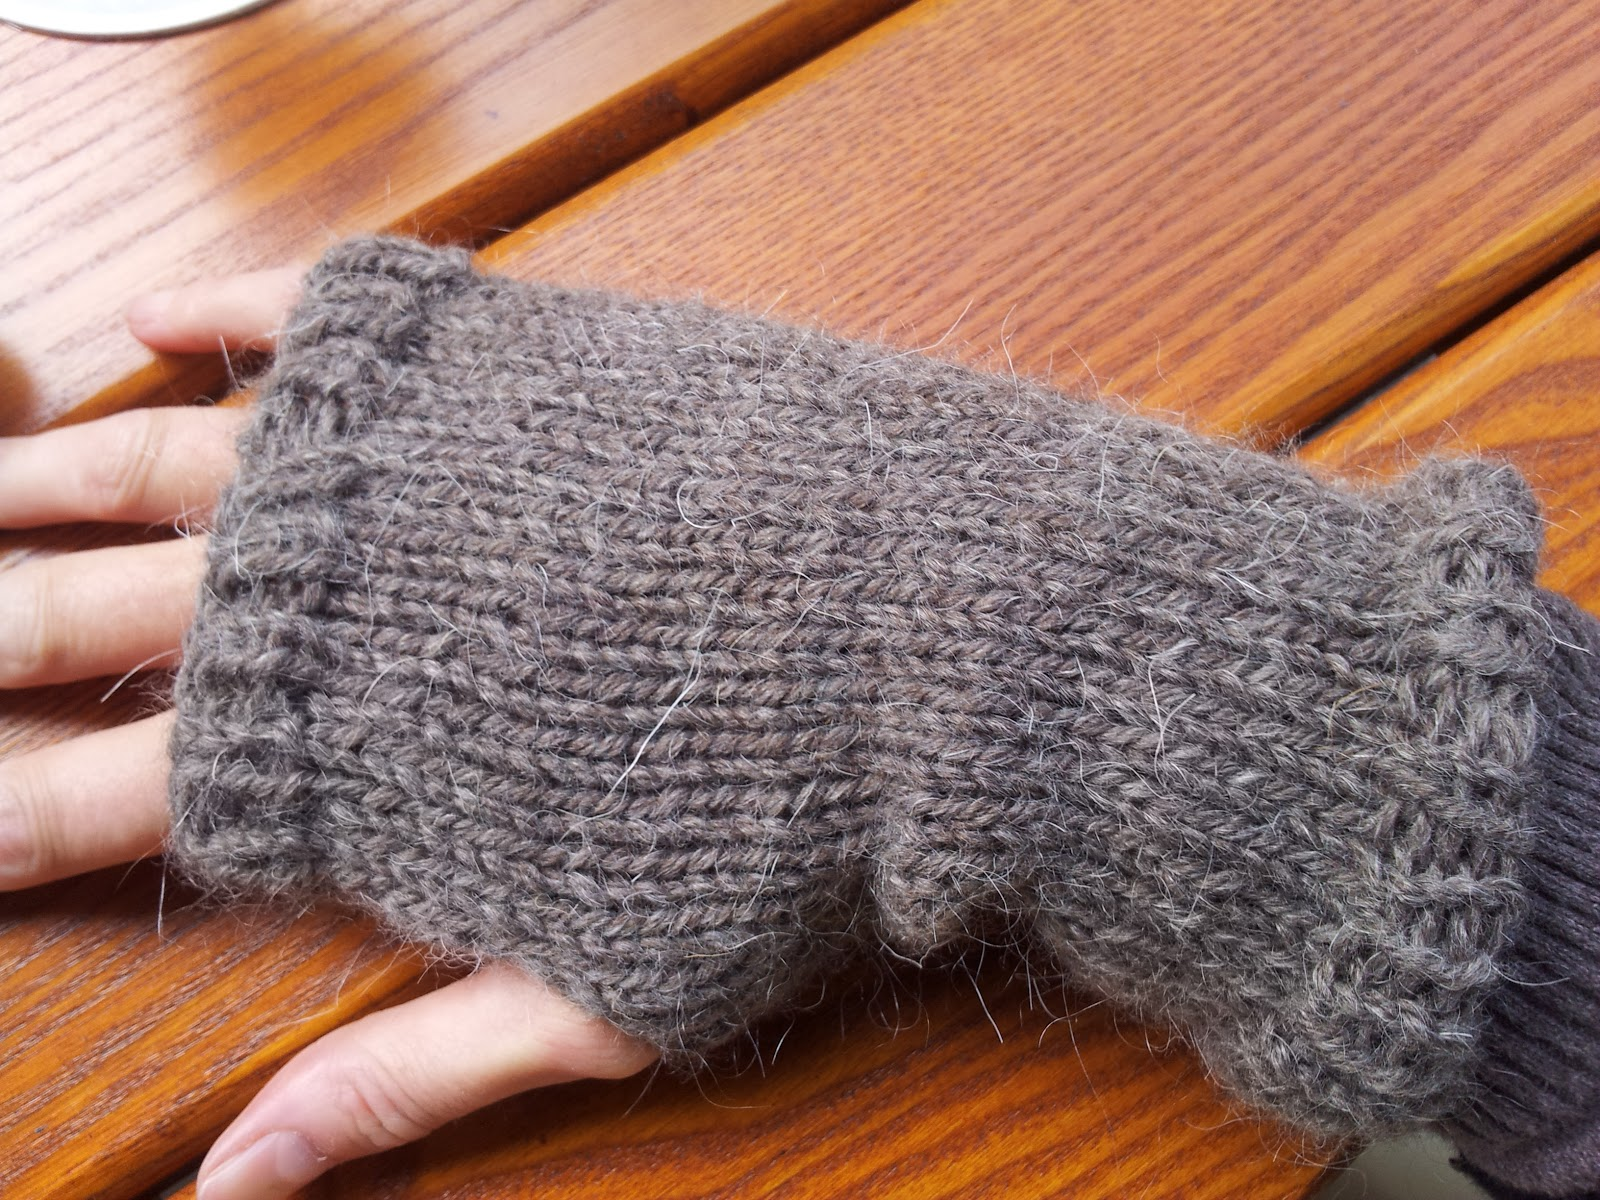 Roving Around Crafts: Rustic-style hand knitted wrist warmers